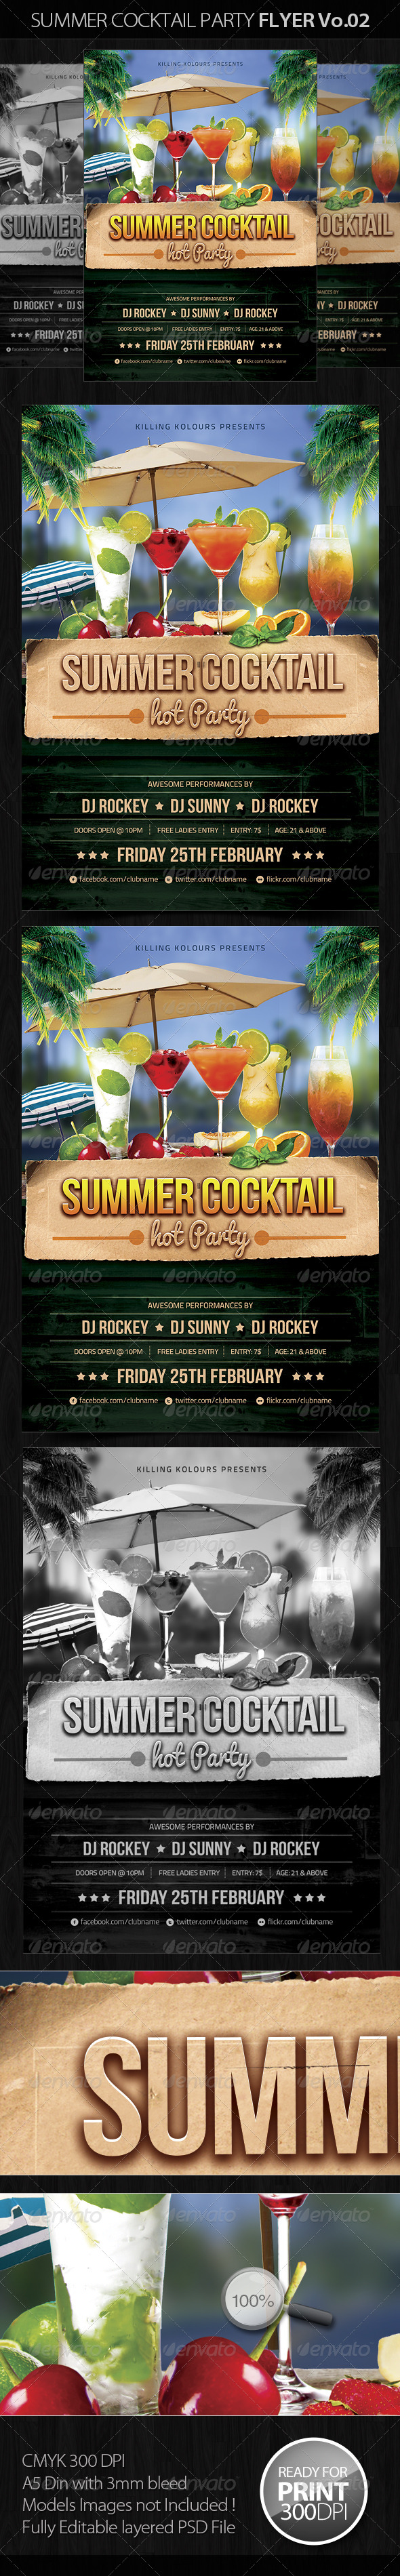 GraphicRiver Summer Cocktail Party Flyer Vo.2 4893198